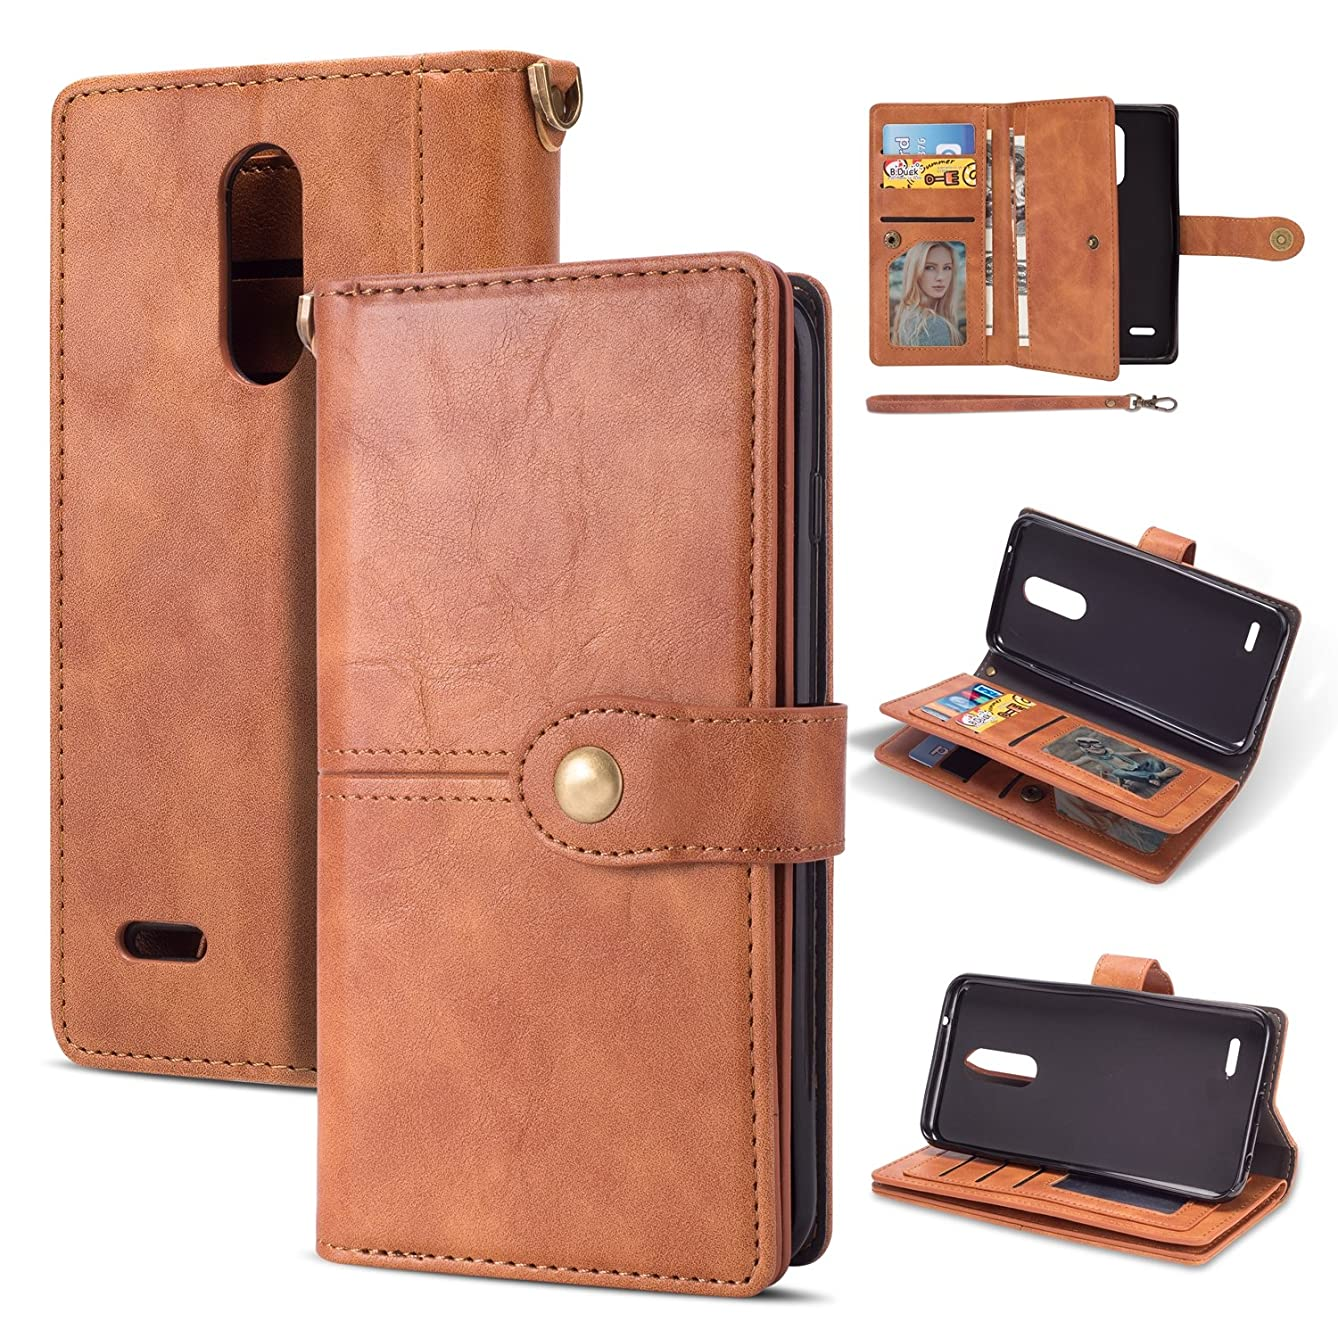 LG K20 Plus Case, LG K20/LG K20V/K20 V/K10 2017/Harmony/LG Grace 4G LTE with Wallet Case,Ankoe Vintage Leather Folio Flop Secure Fit Magnetic Closure Folding Case (Brown)